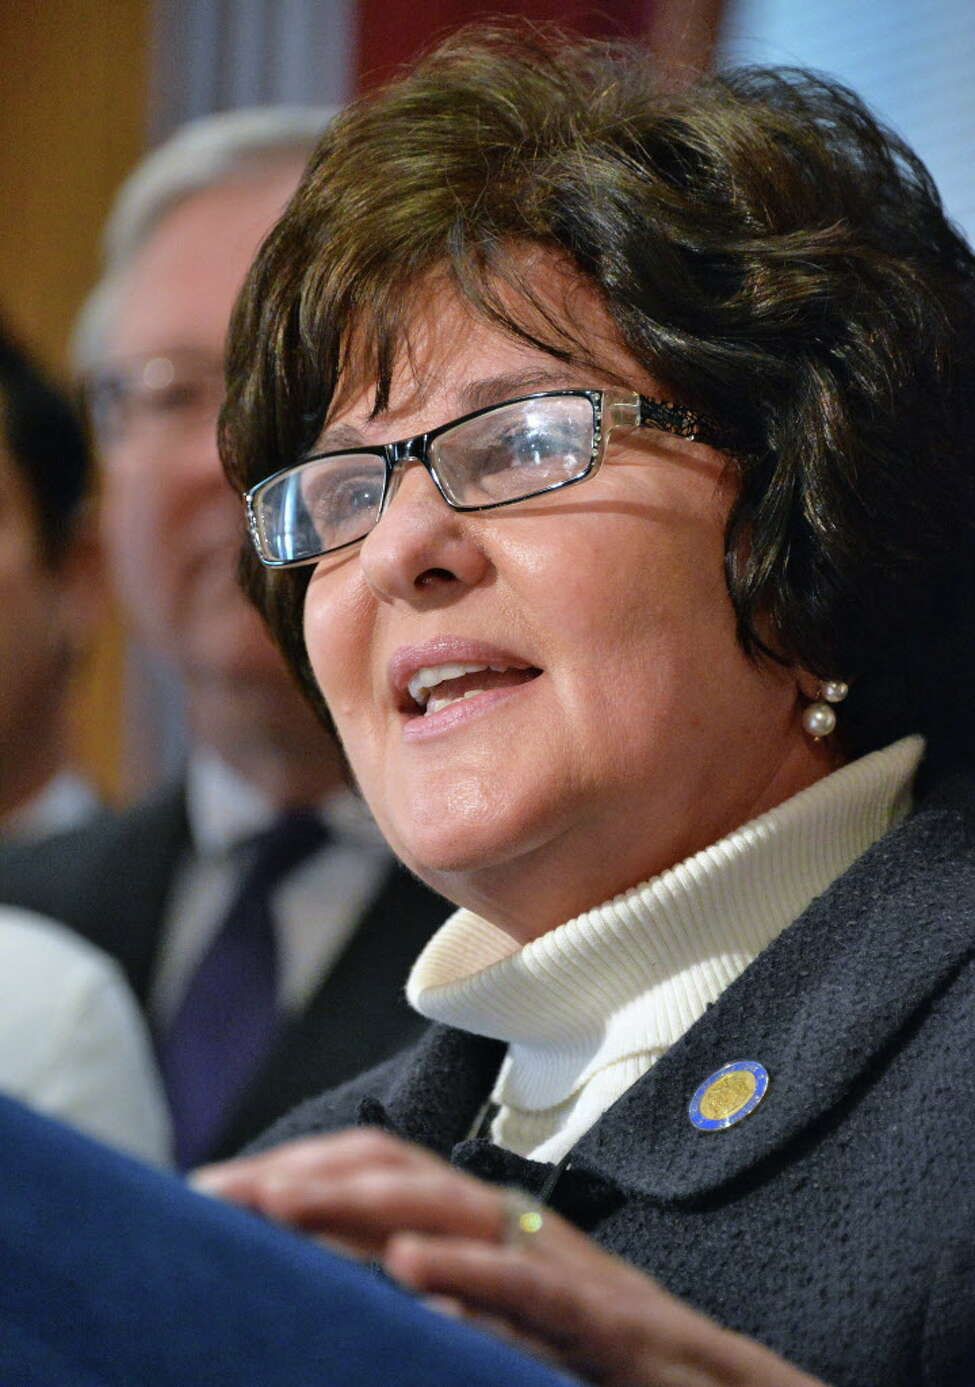 NYS Senator Kathy Marchione speaks during a news conference to urge the Assembly passage of the Public Assistance Integrity Act (PAIA), Tuesday Feb. 4, 2014, in Albany, NY. (John Carl D'Annibale / Times Union)